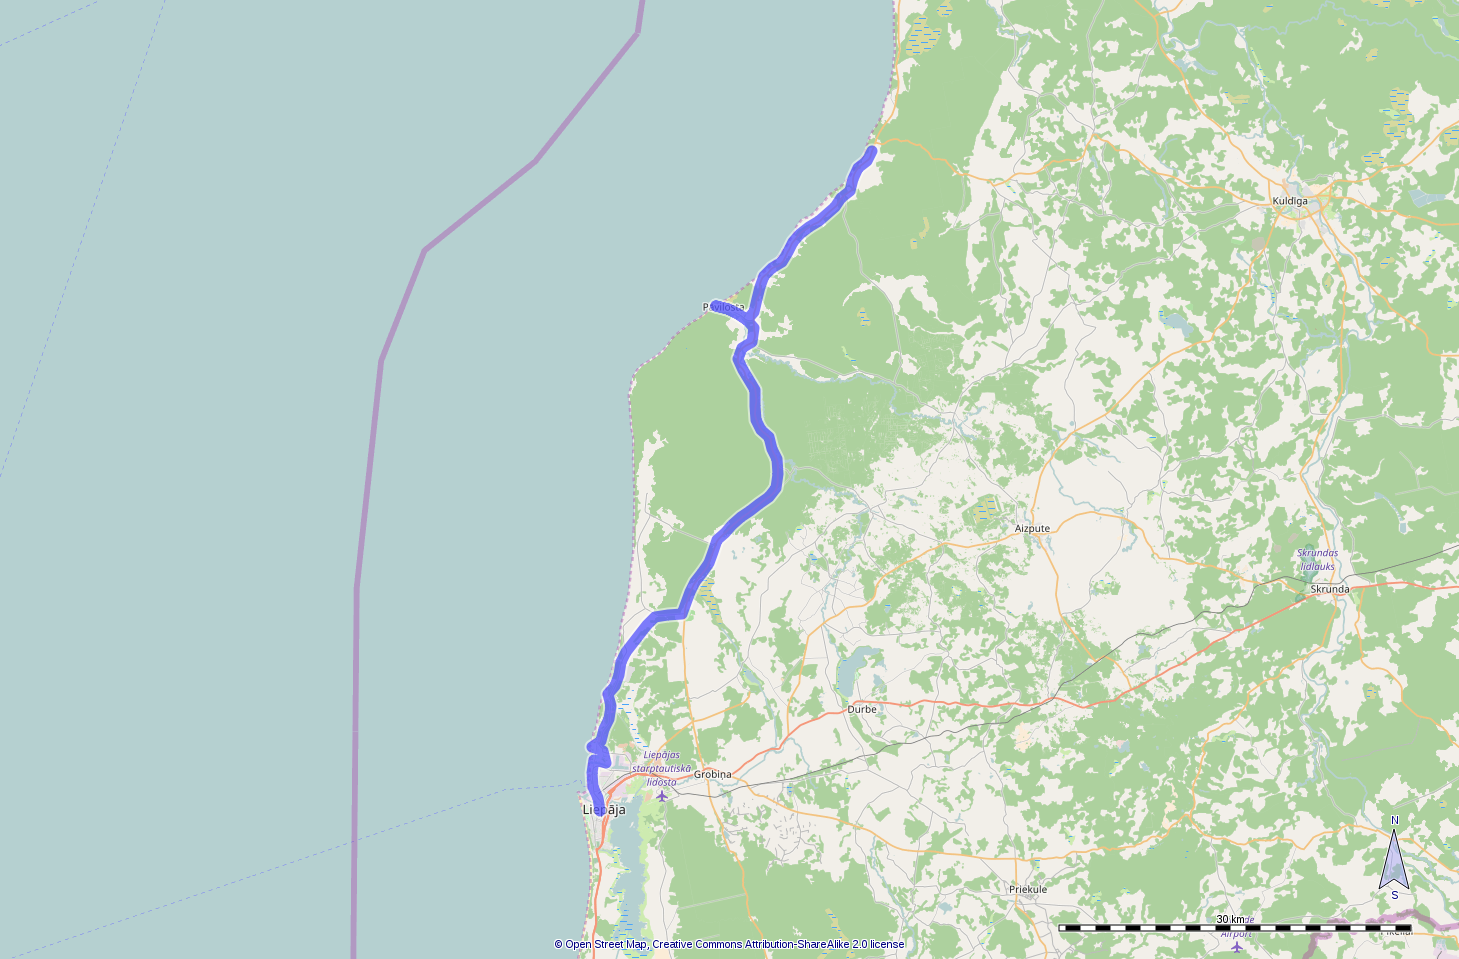 Route day 21